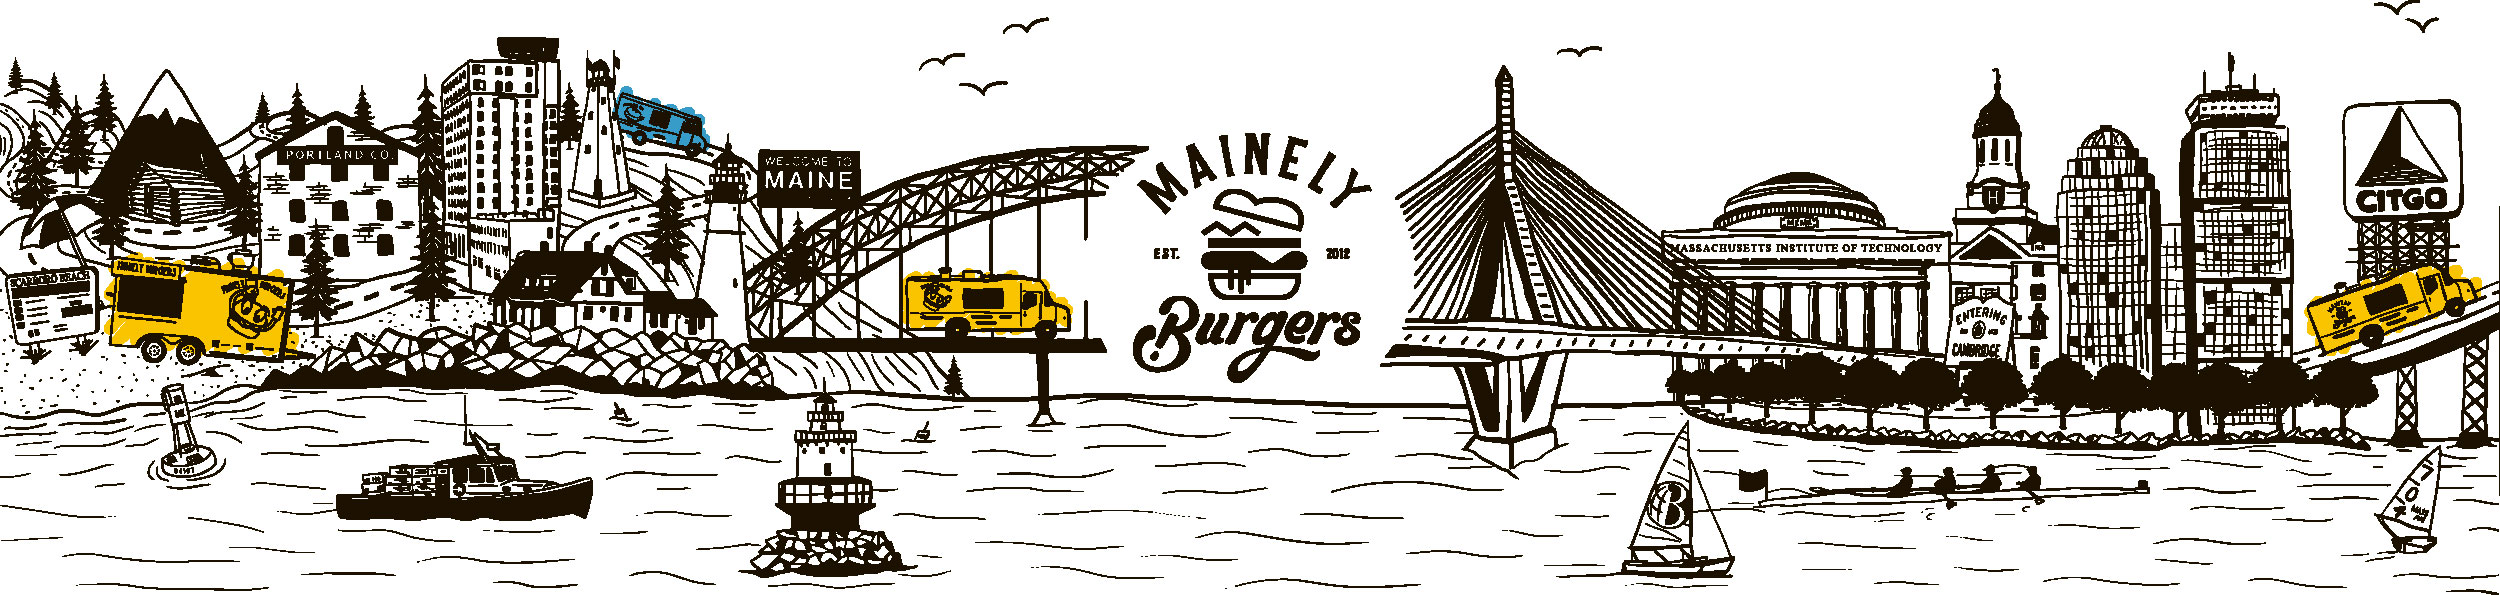 Mural-Mainely-Burger.jpg